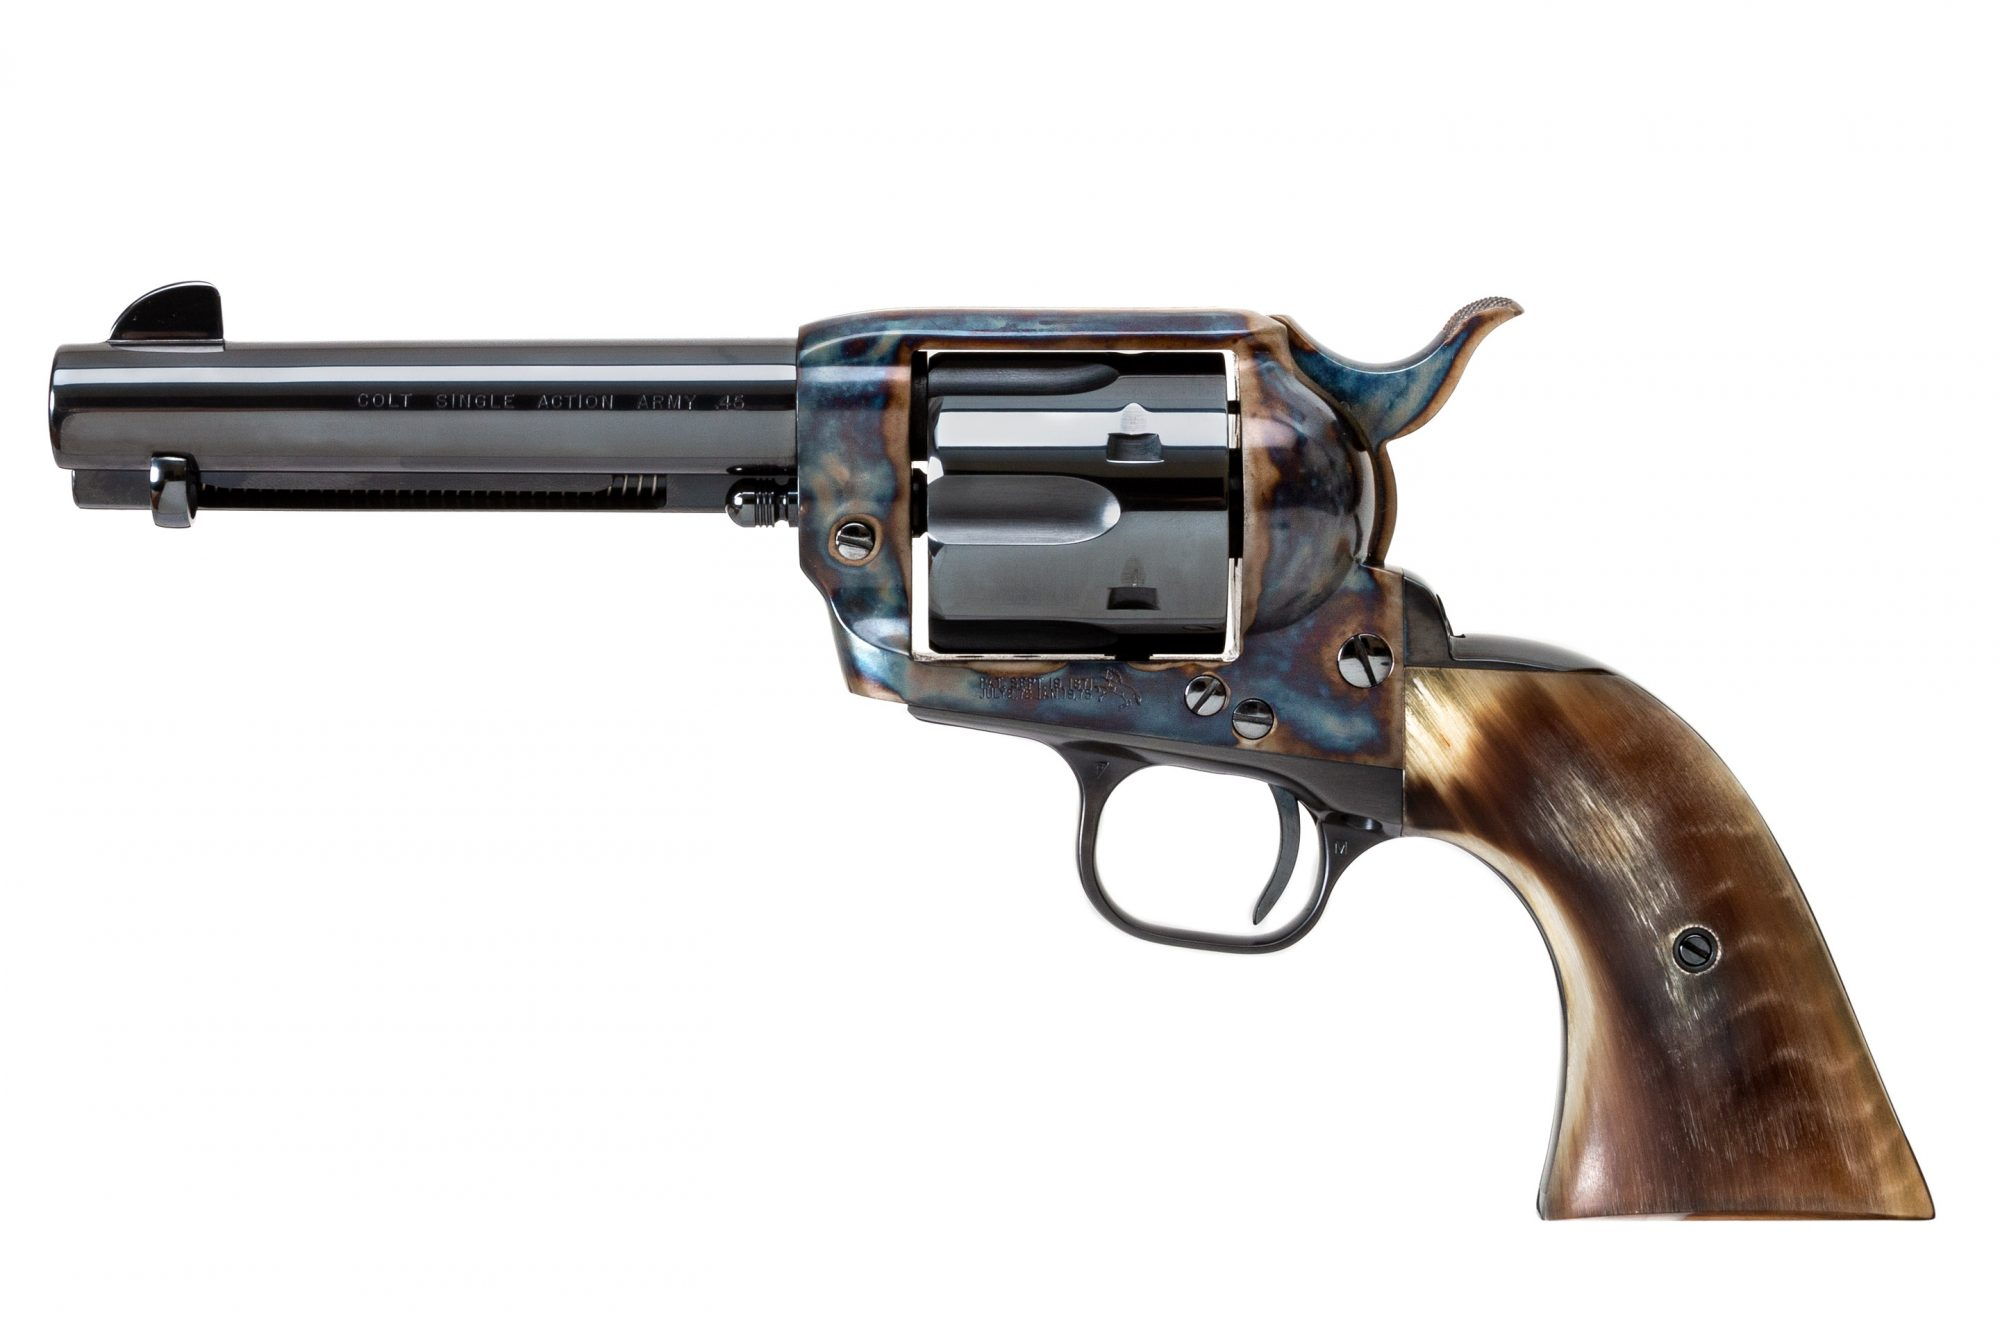 Photo of a 3rd Generation Colt SAA revolver, with custom grips, 1st Generation cylinder conversion, and restoration grade metal finishes by Turnbull Restoration of Bloomfield, NY